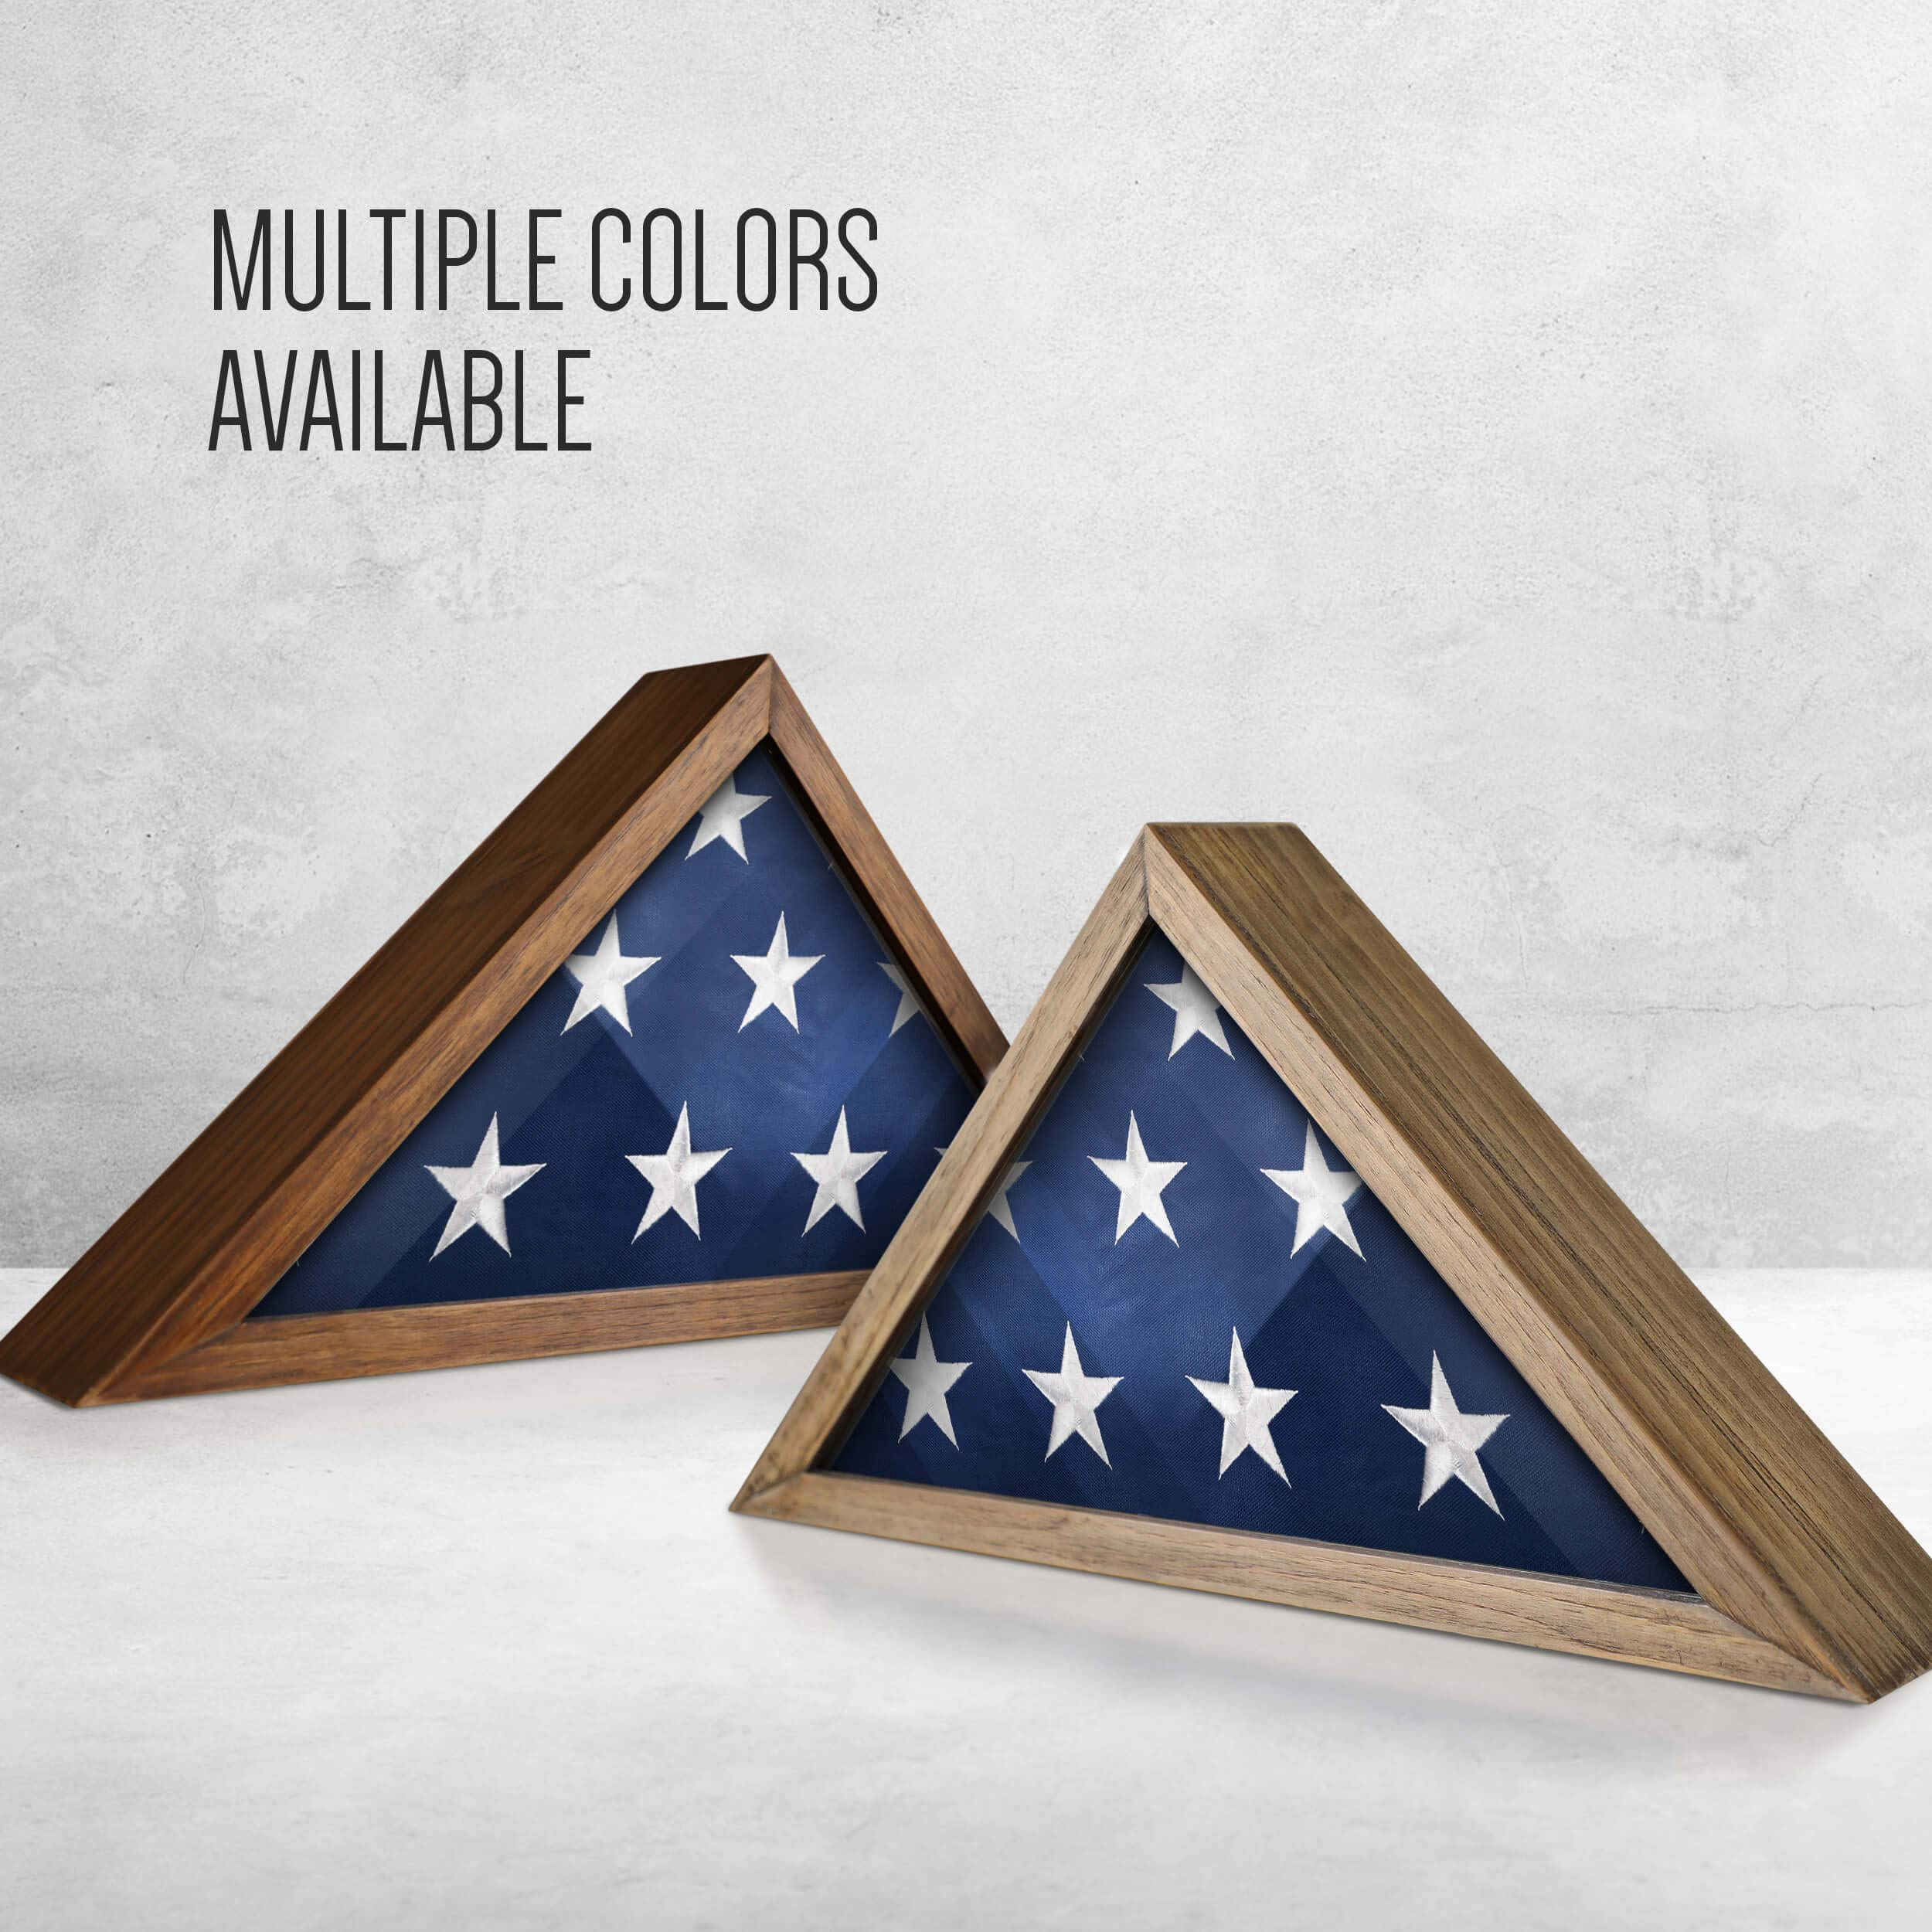 Rustic Flag Case - SOLID WOOD Military Flag Display Case for 9.5 x 5 American Veteran Burial Flag, Wall Mounted Burial Flag Frame, - Flag Shadow Box to display folded flag. (Weathered Wood) by HBCY Creations (Image #8)